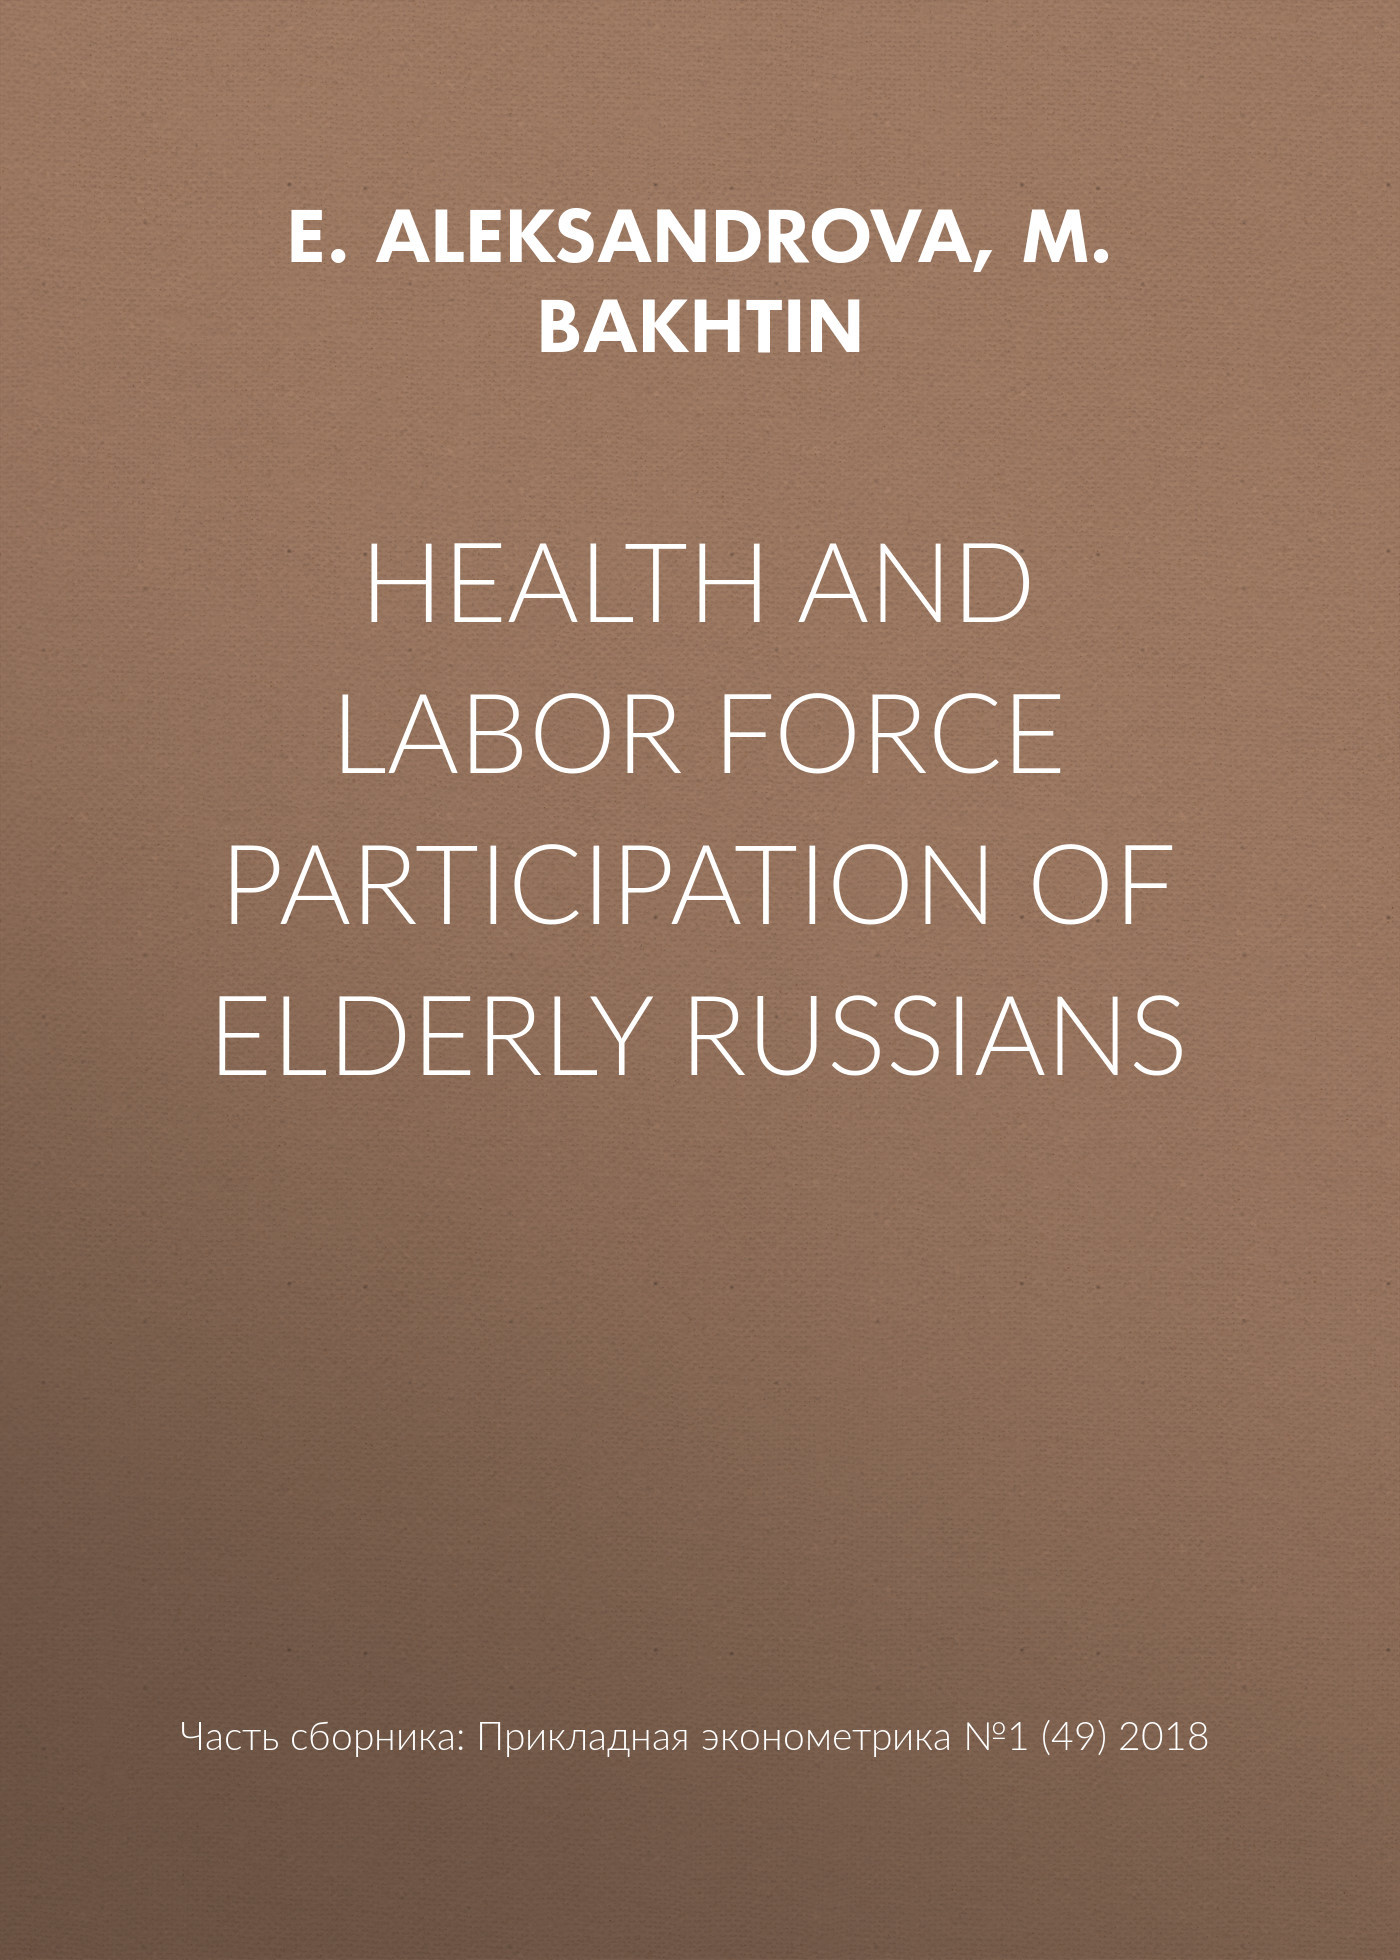 E. Aleksandrova. Health and labor force participation of elderly Russians